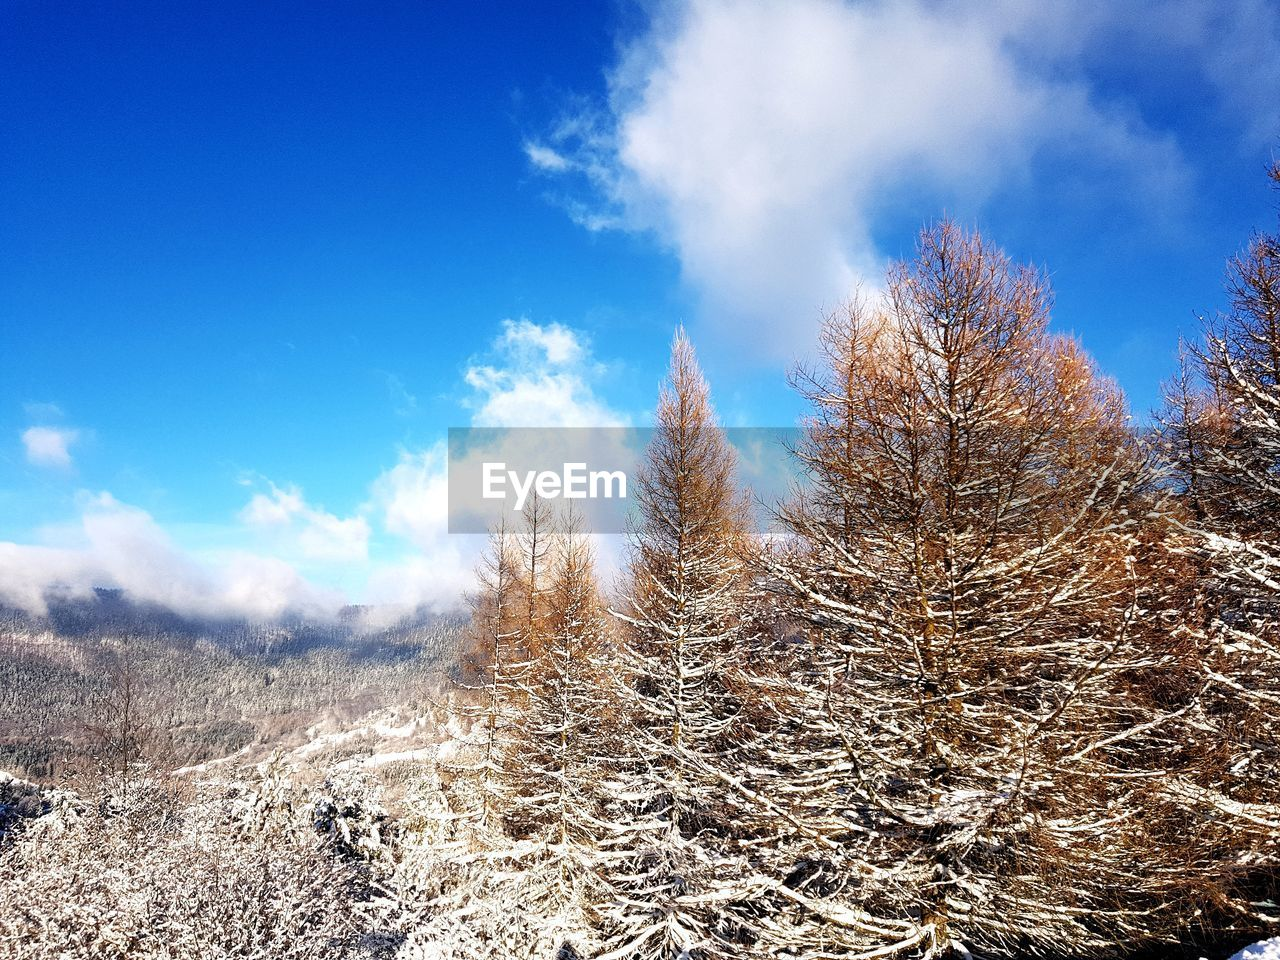 nature, beauty in nature, tranquility, snow, sky, tree, tranquil scene, winter, day, cold temperature, outdoors, landscape, no people, cloud - sky, scenics, bare tree, blue